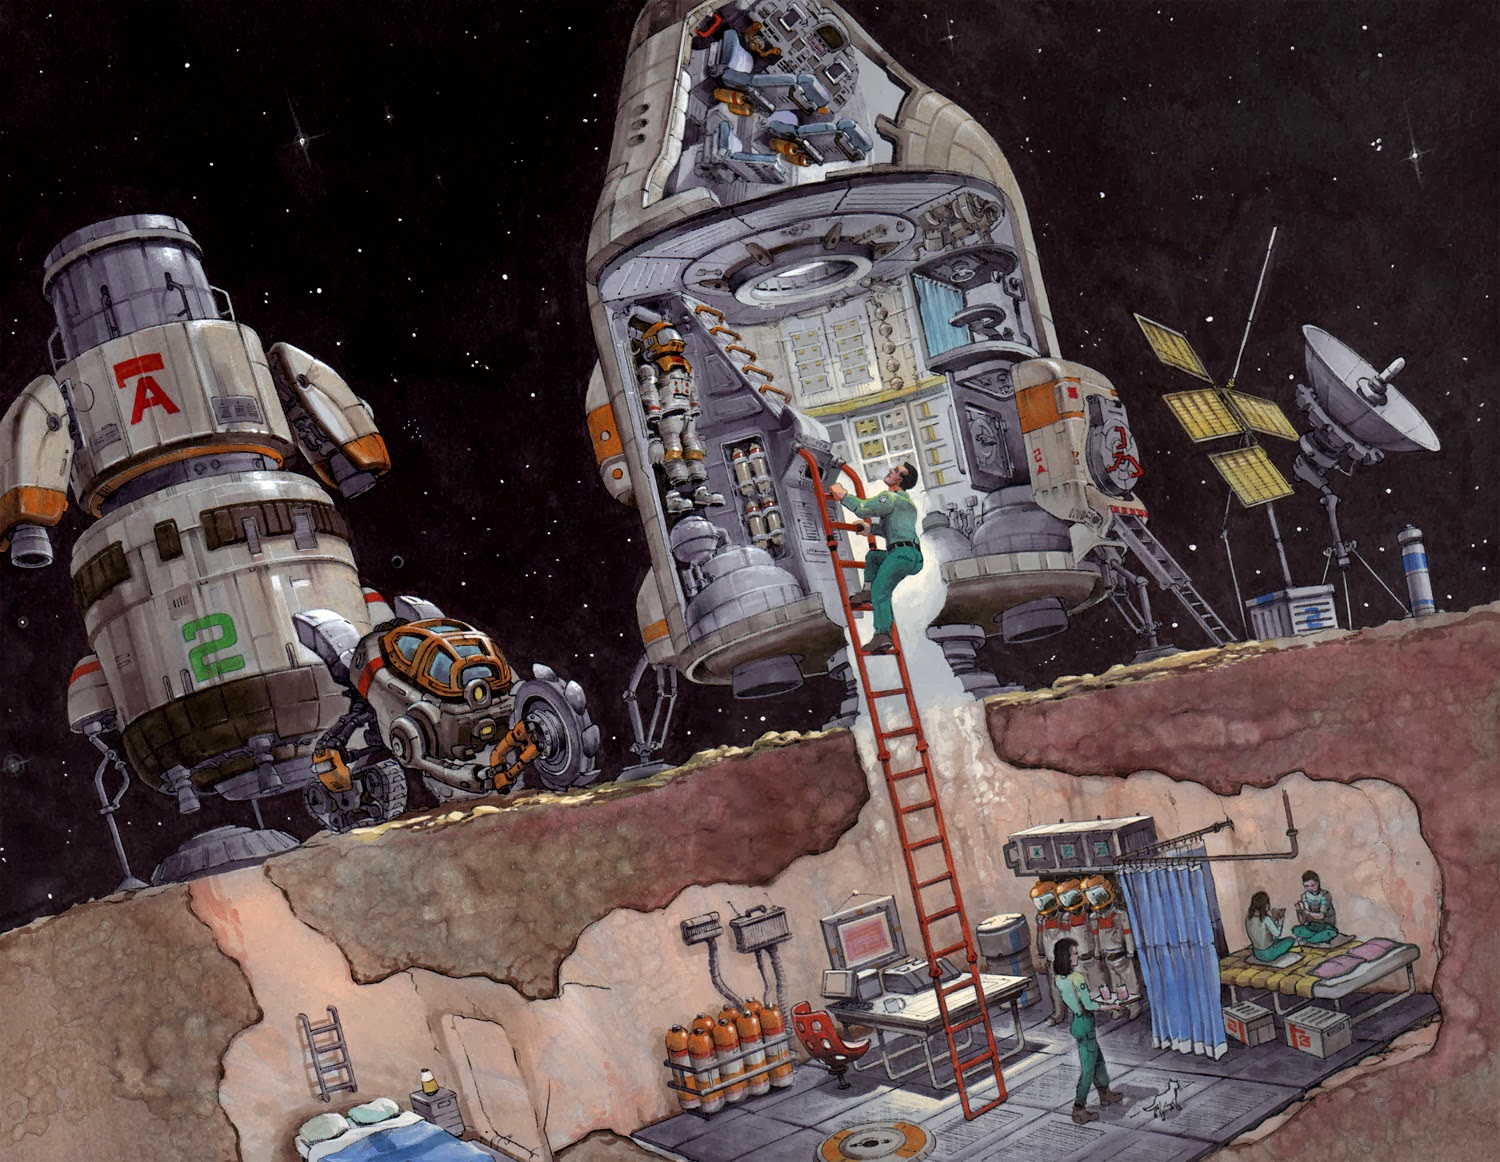 Astronauts Asteroid Mining (page 2) - Pics about space